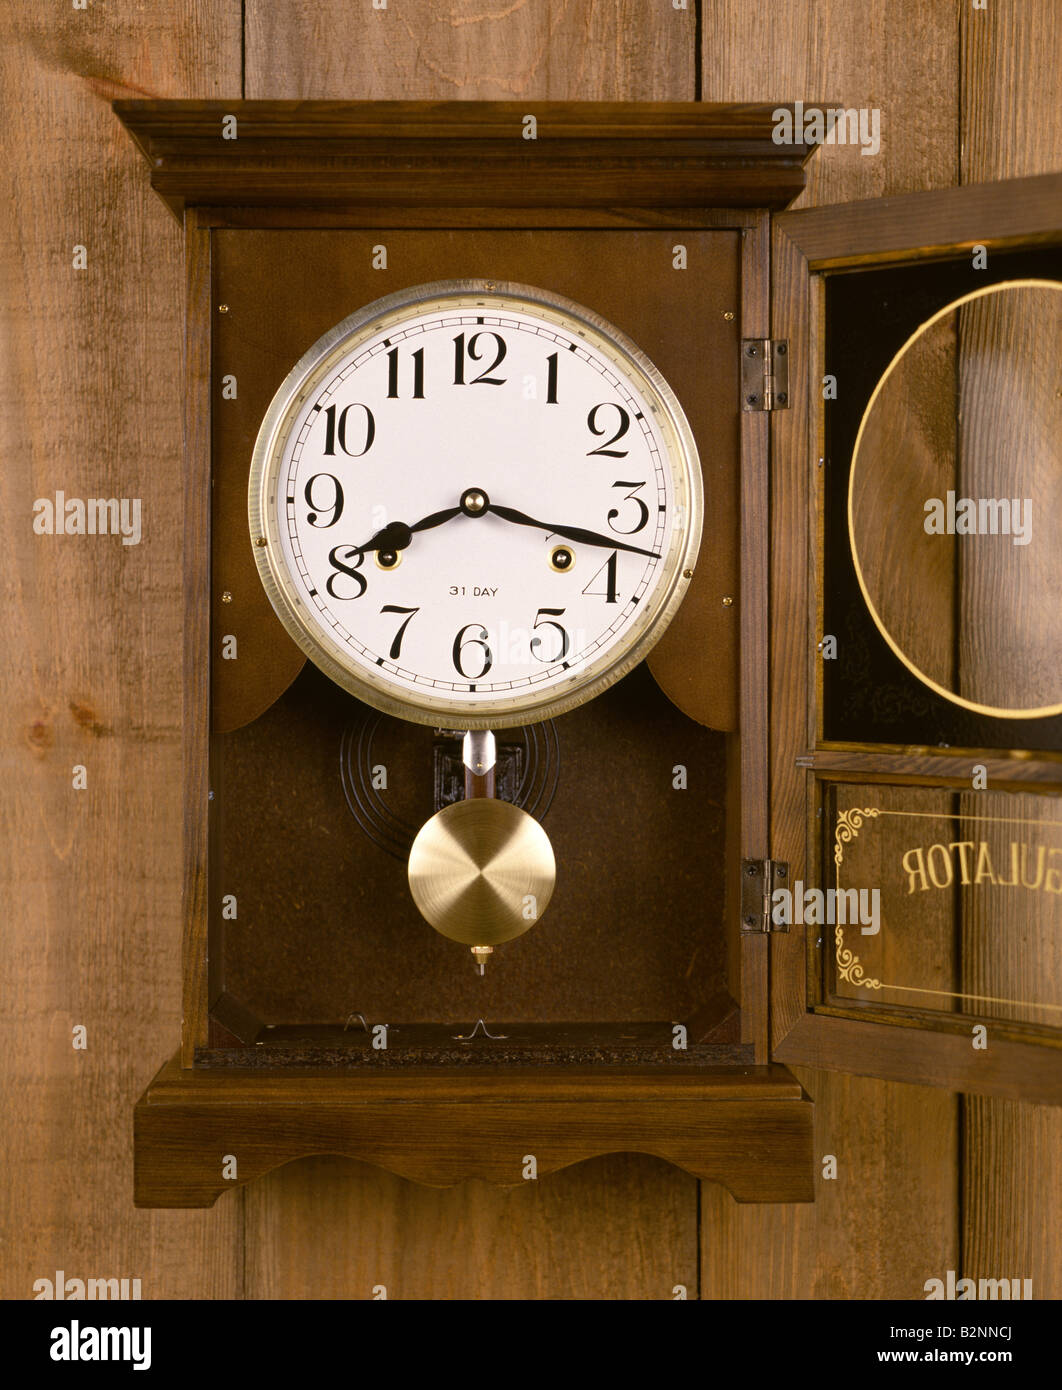 ANALOG CLOCK WITH PENDULUM - Stock Image